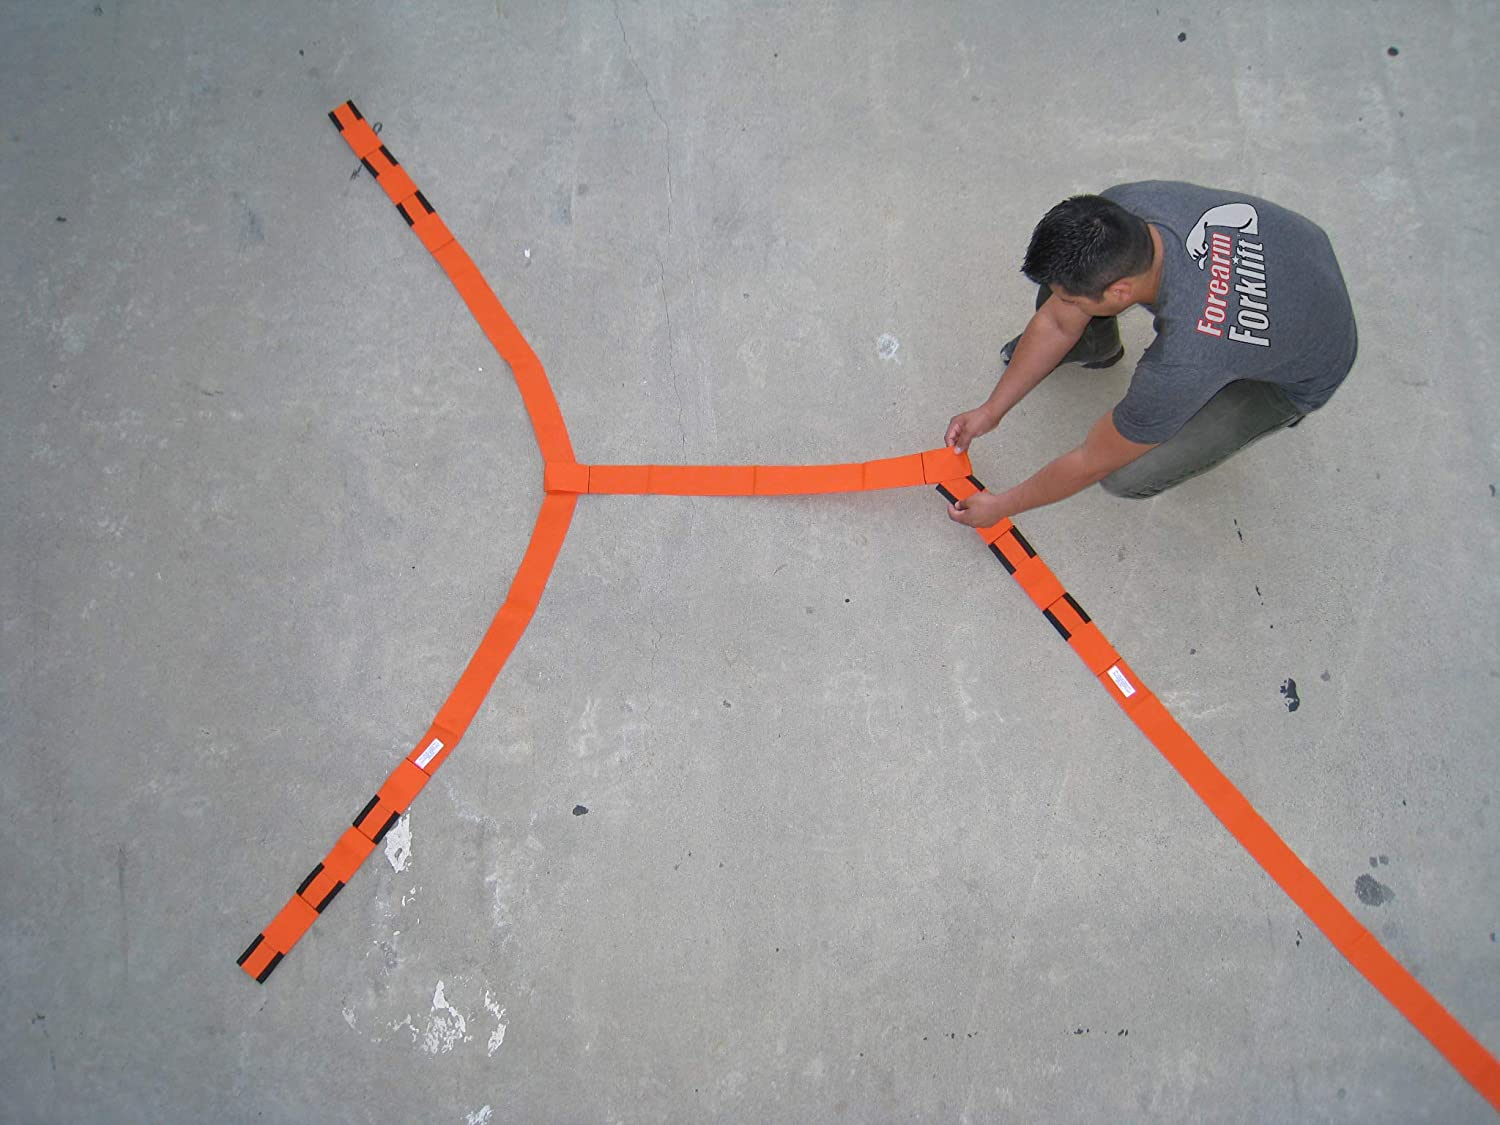 Forearm Forklift Extension for Use with Lifting Straps or Harness Adds an Additional 3.5 Feet Model EXT Orange